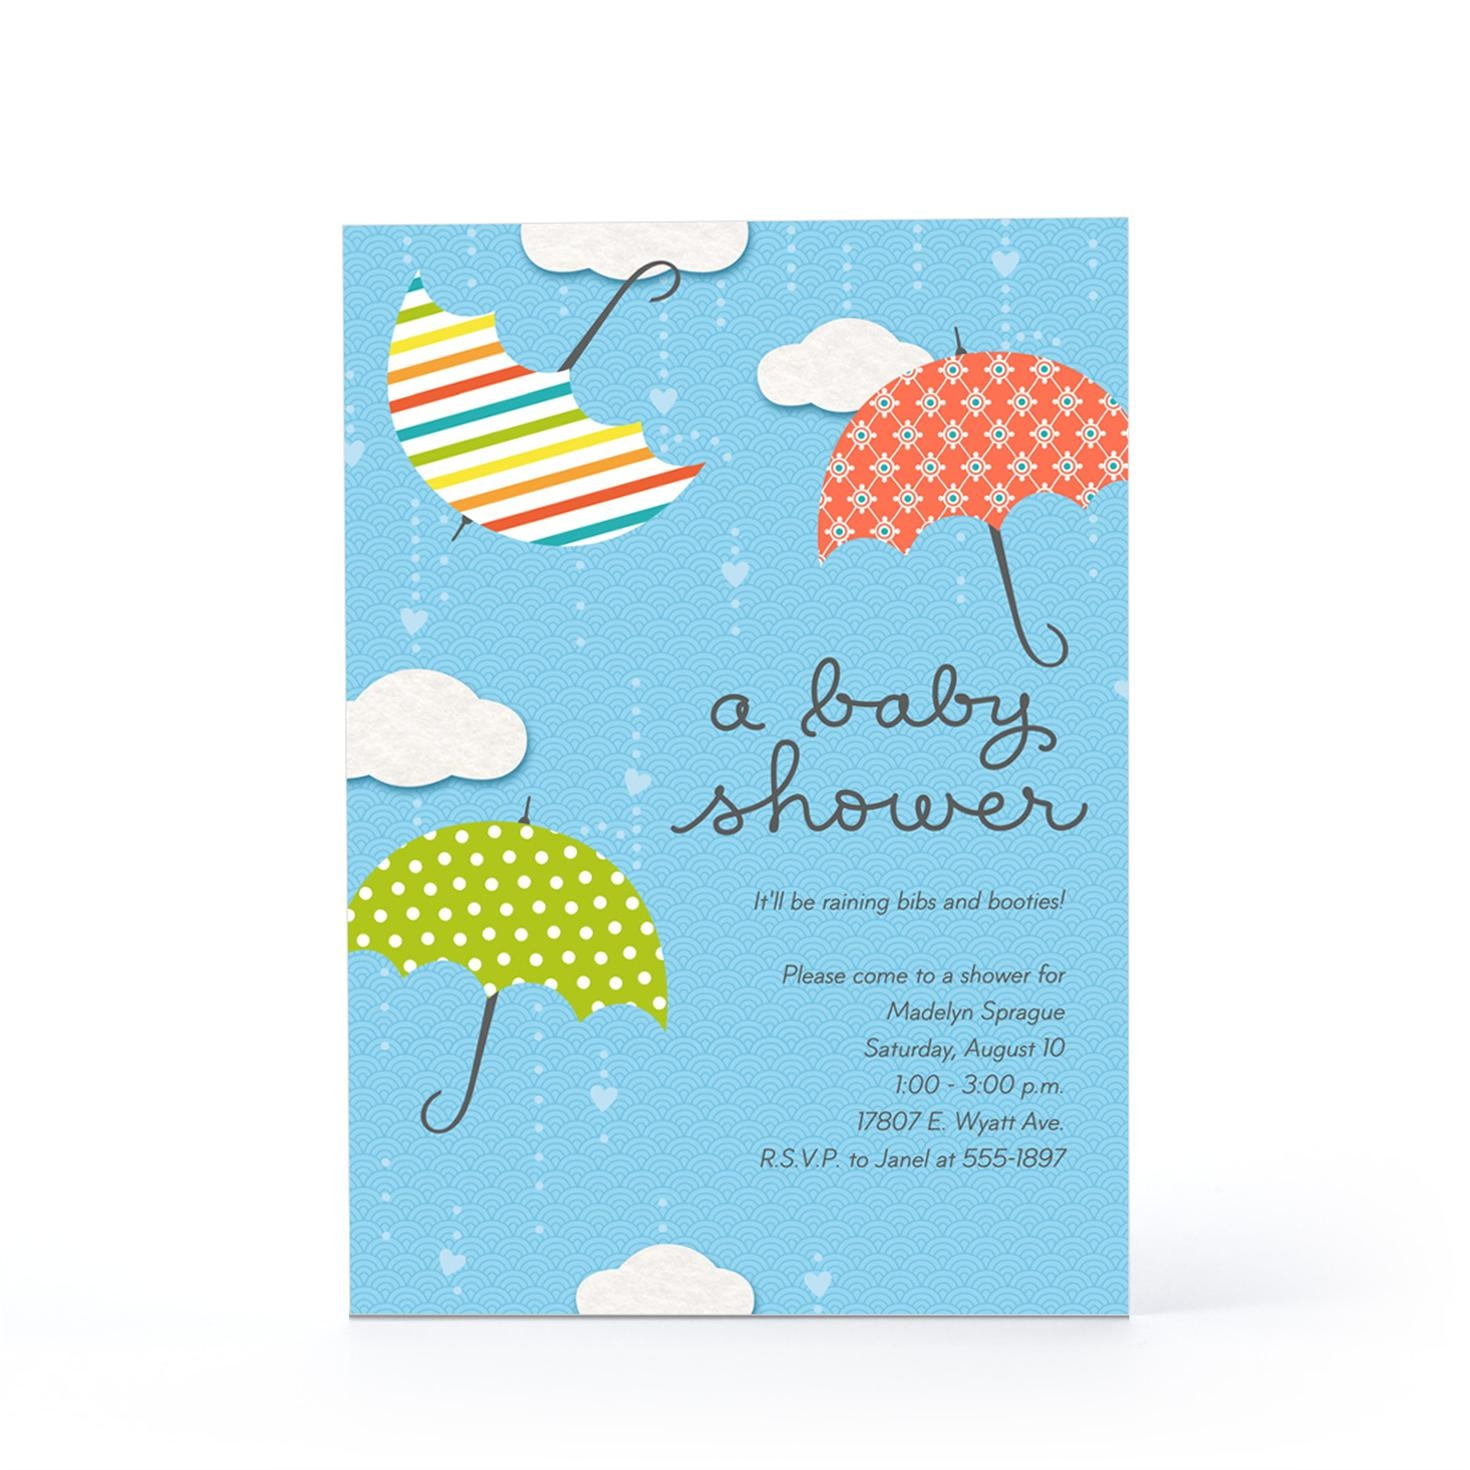 Full Size of Baby Shower:49+ Prime Baby Shower Card Message Photo Concepts Baby Shower Card Message As Well As Baby Shower Halls With Baby Girl Baby Shower Plus Surprise Baby Shower Together With Baby Shower Snapchat Filter